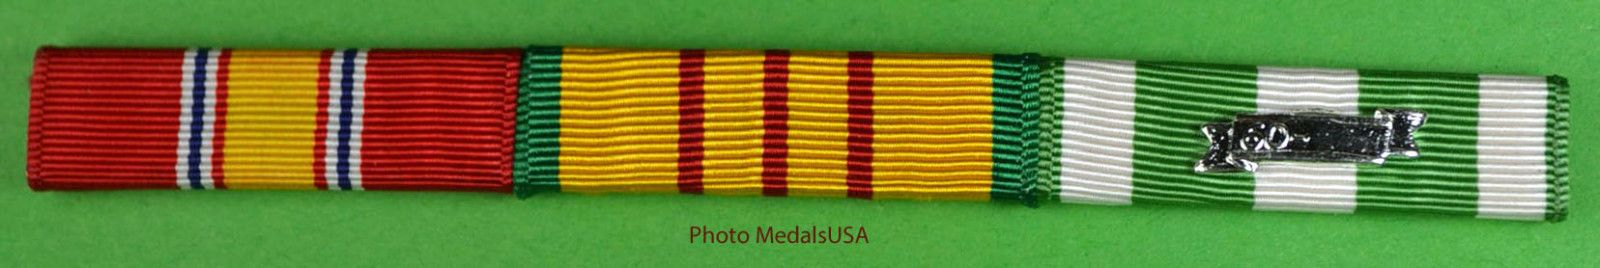 12.95 Vietnam War Ribbon Bar National Defense